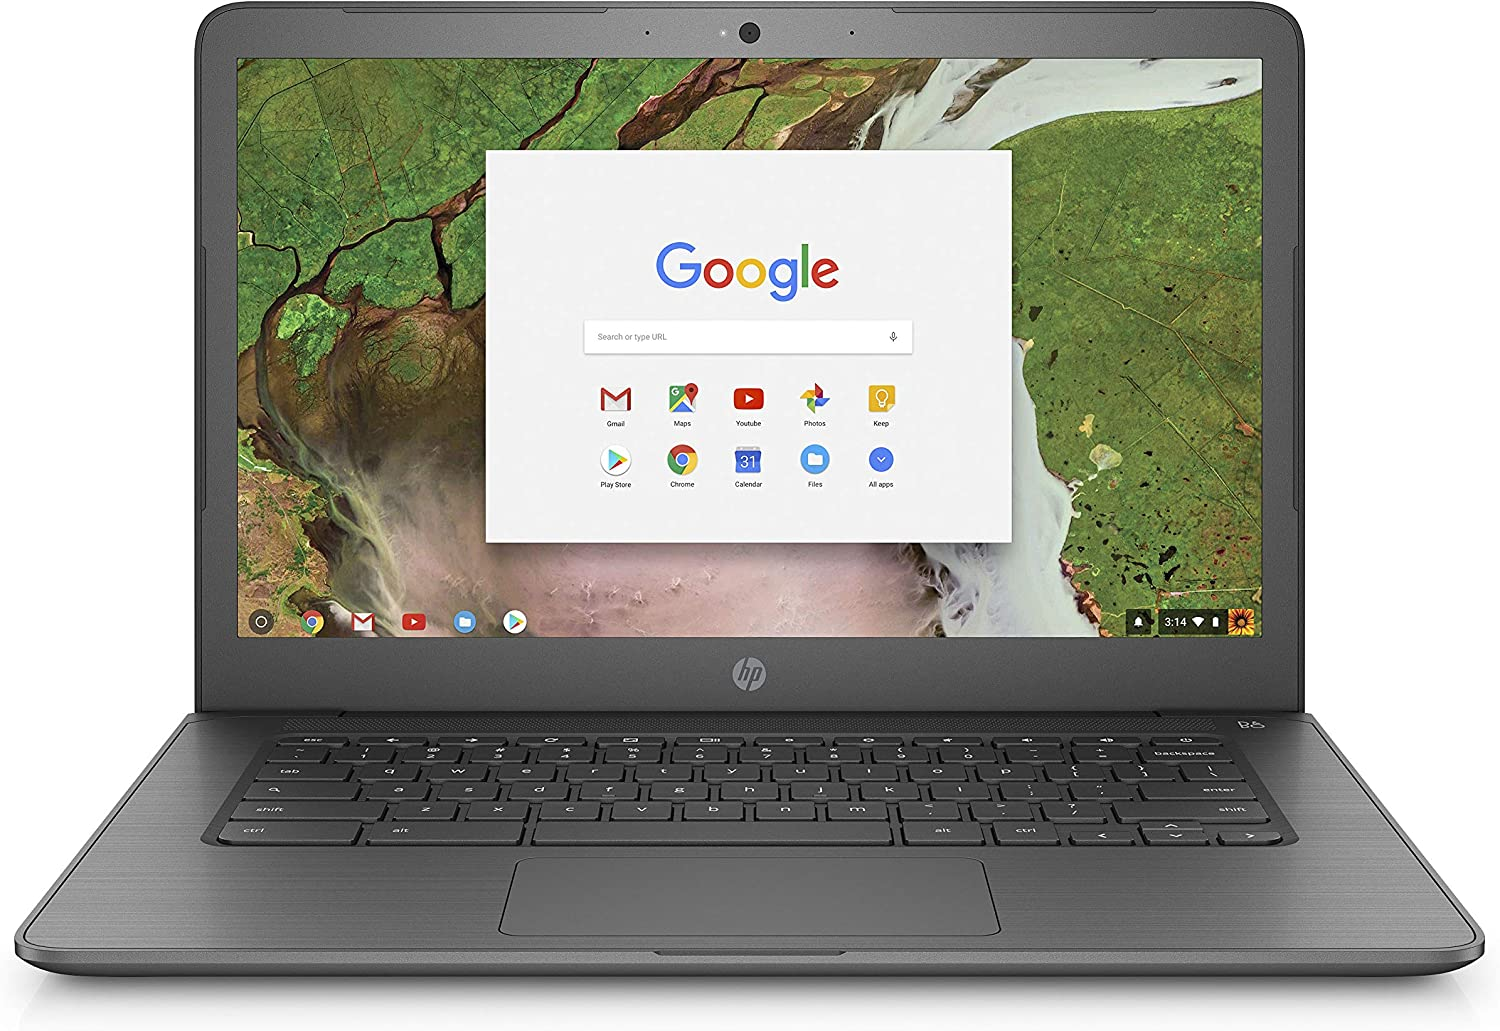 HP Chromebook 14-inch Laptop with 180-Degree Hinge, Intel Celeron N3350 Processor, 4 GB RAM, 16 GB eMMC Storage, Chrome OS (14-ca020nr, Gray)